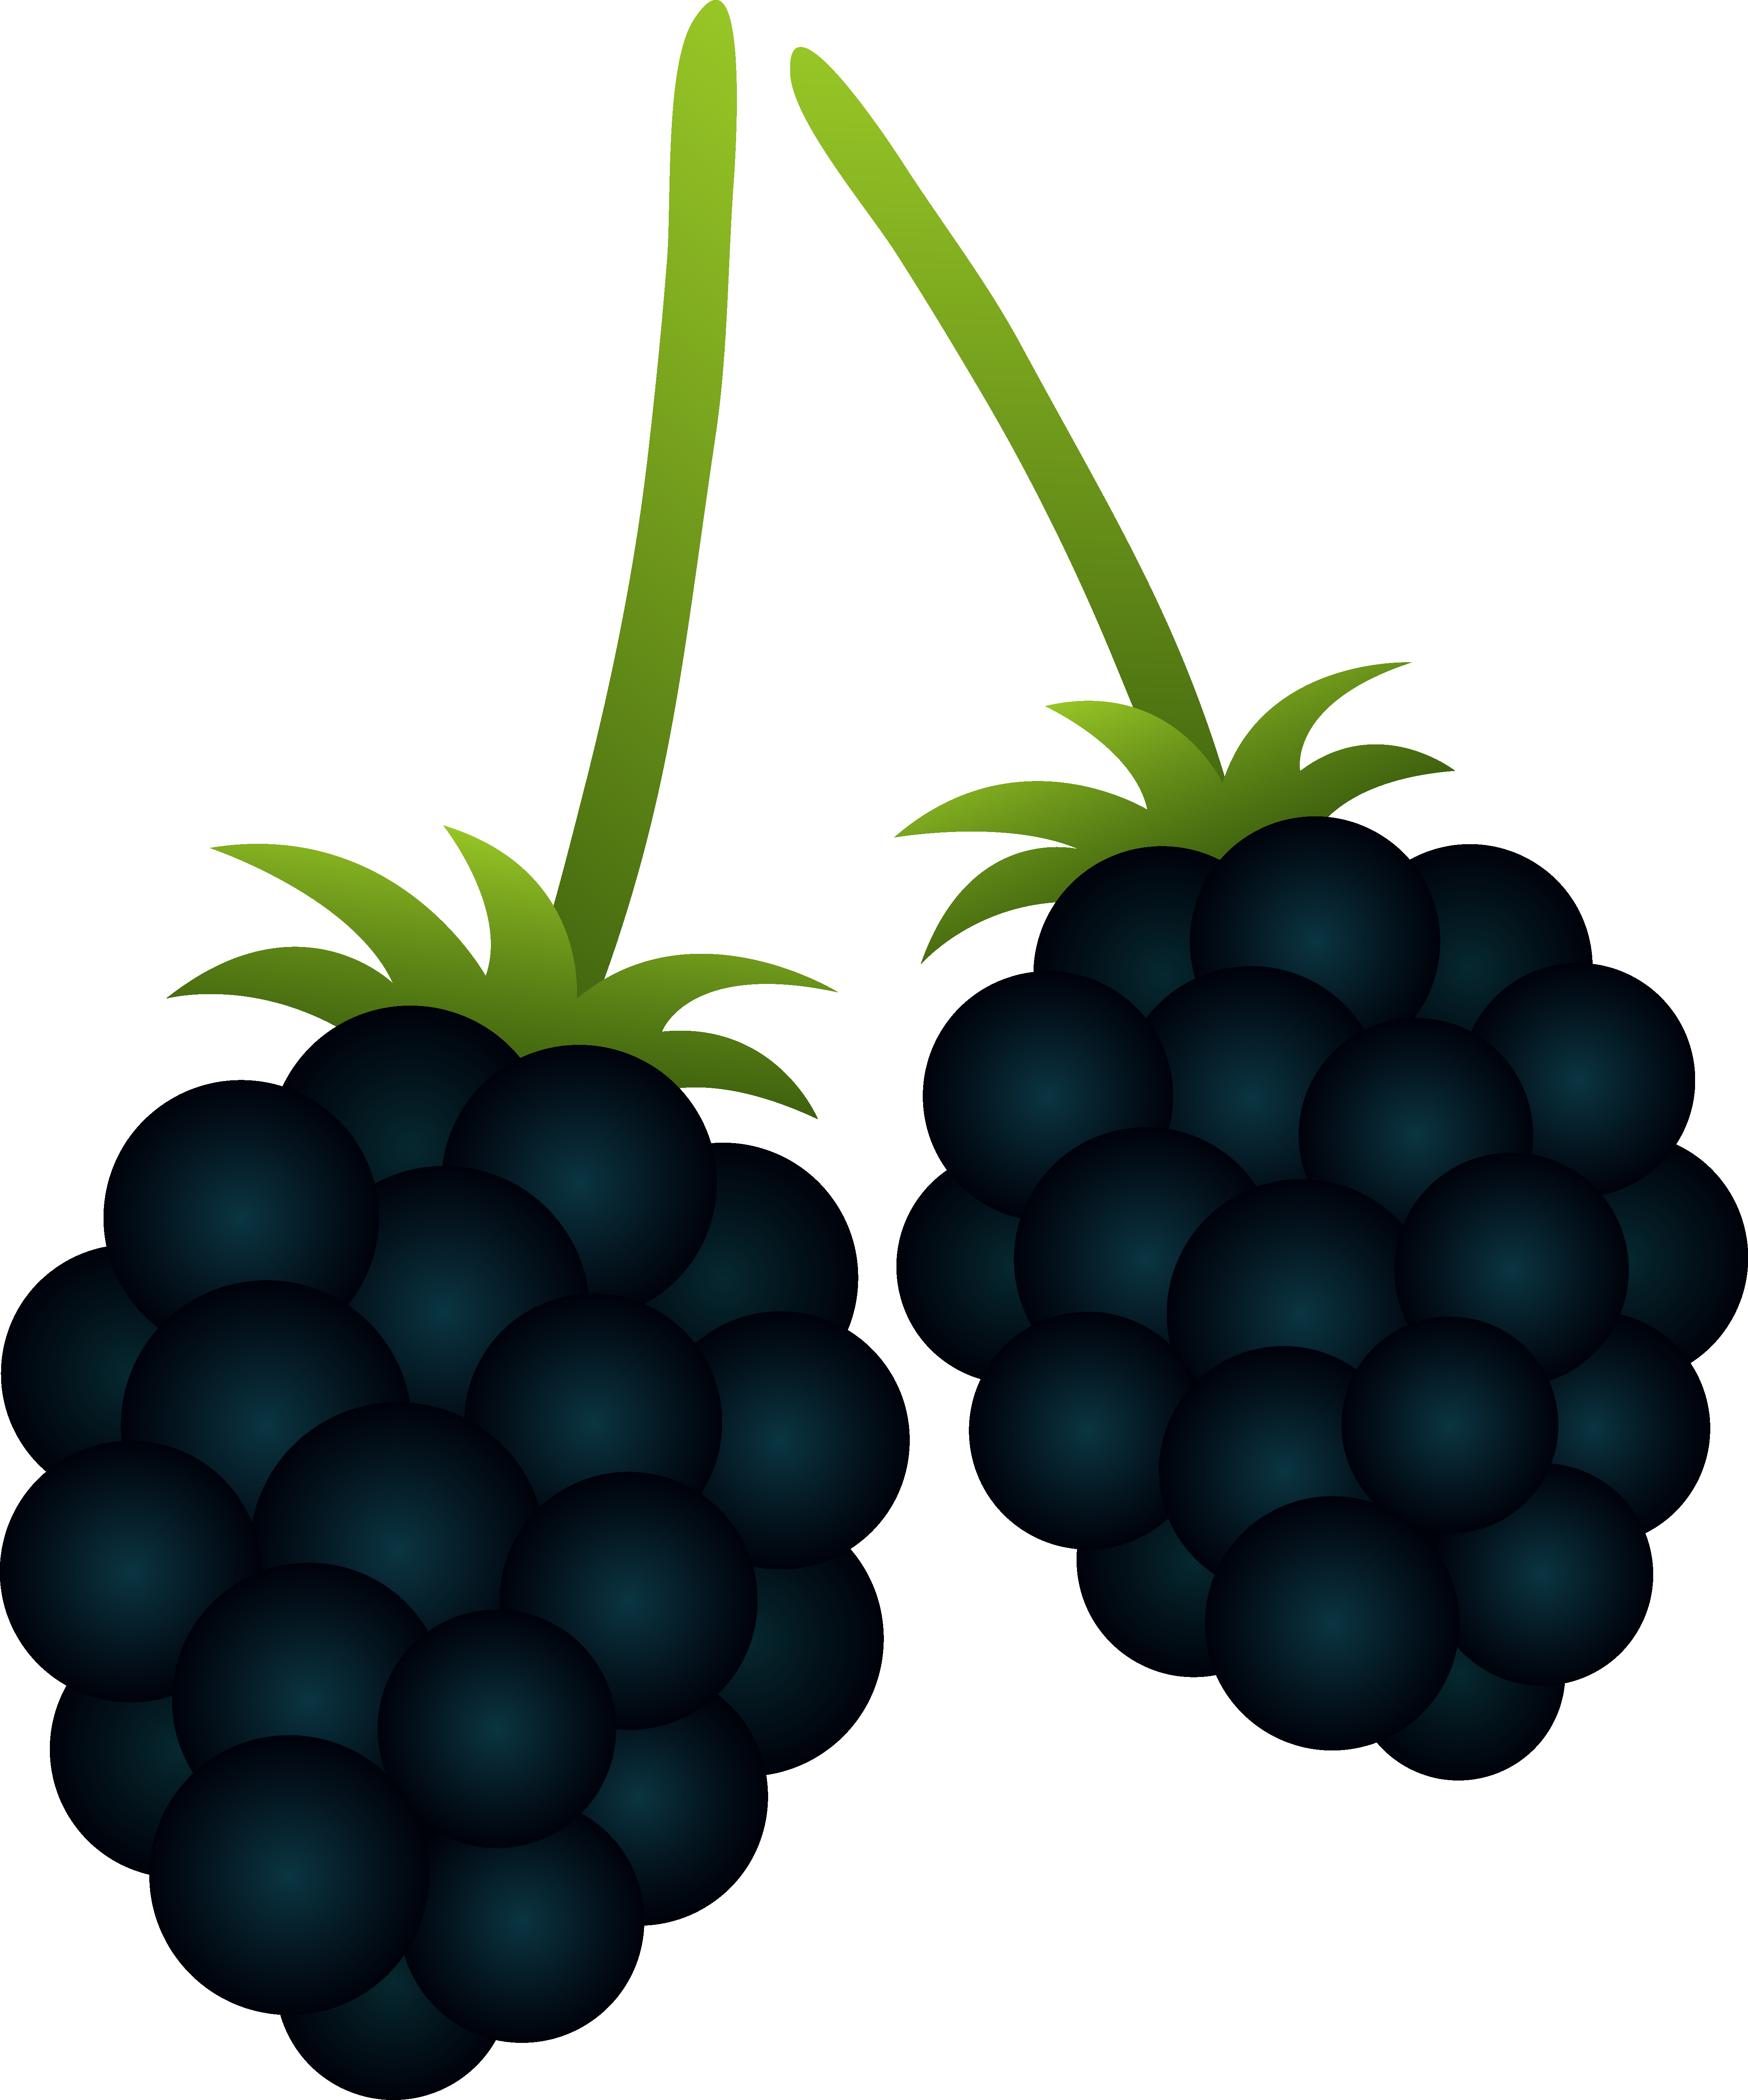 clipart download Two blackberries free clip. Berry clipart berry basket